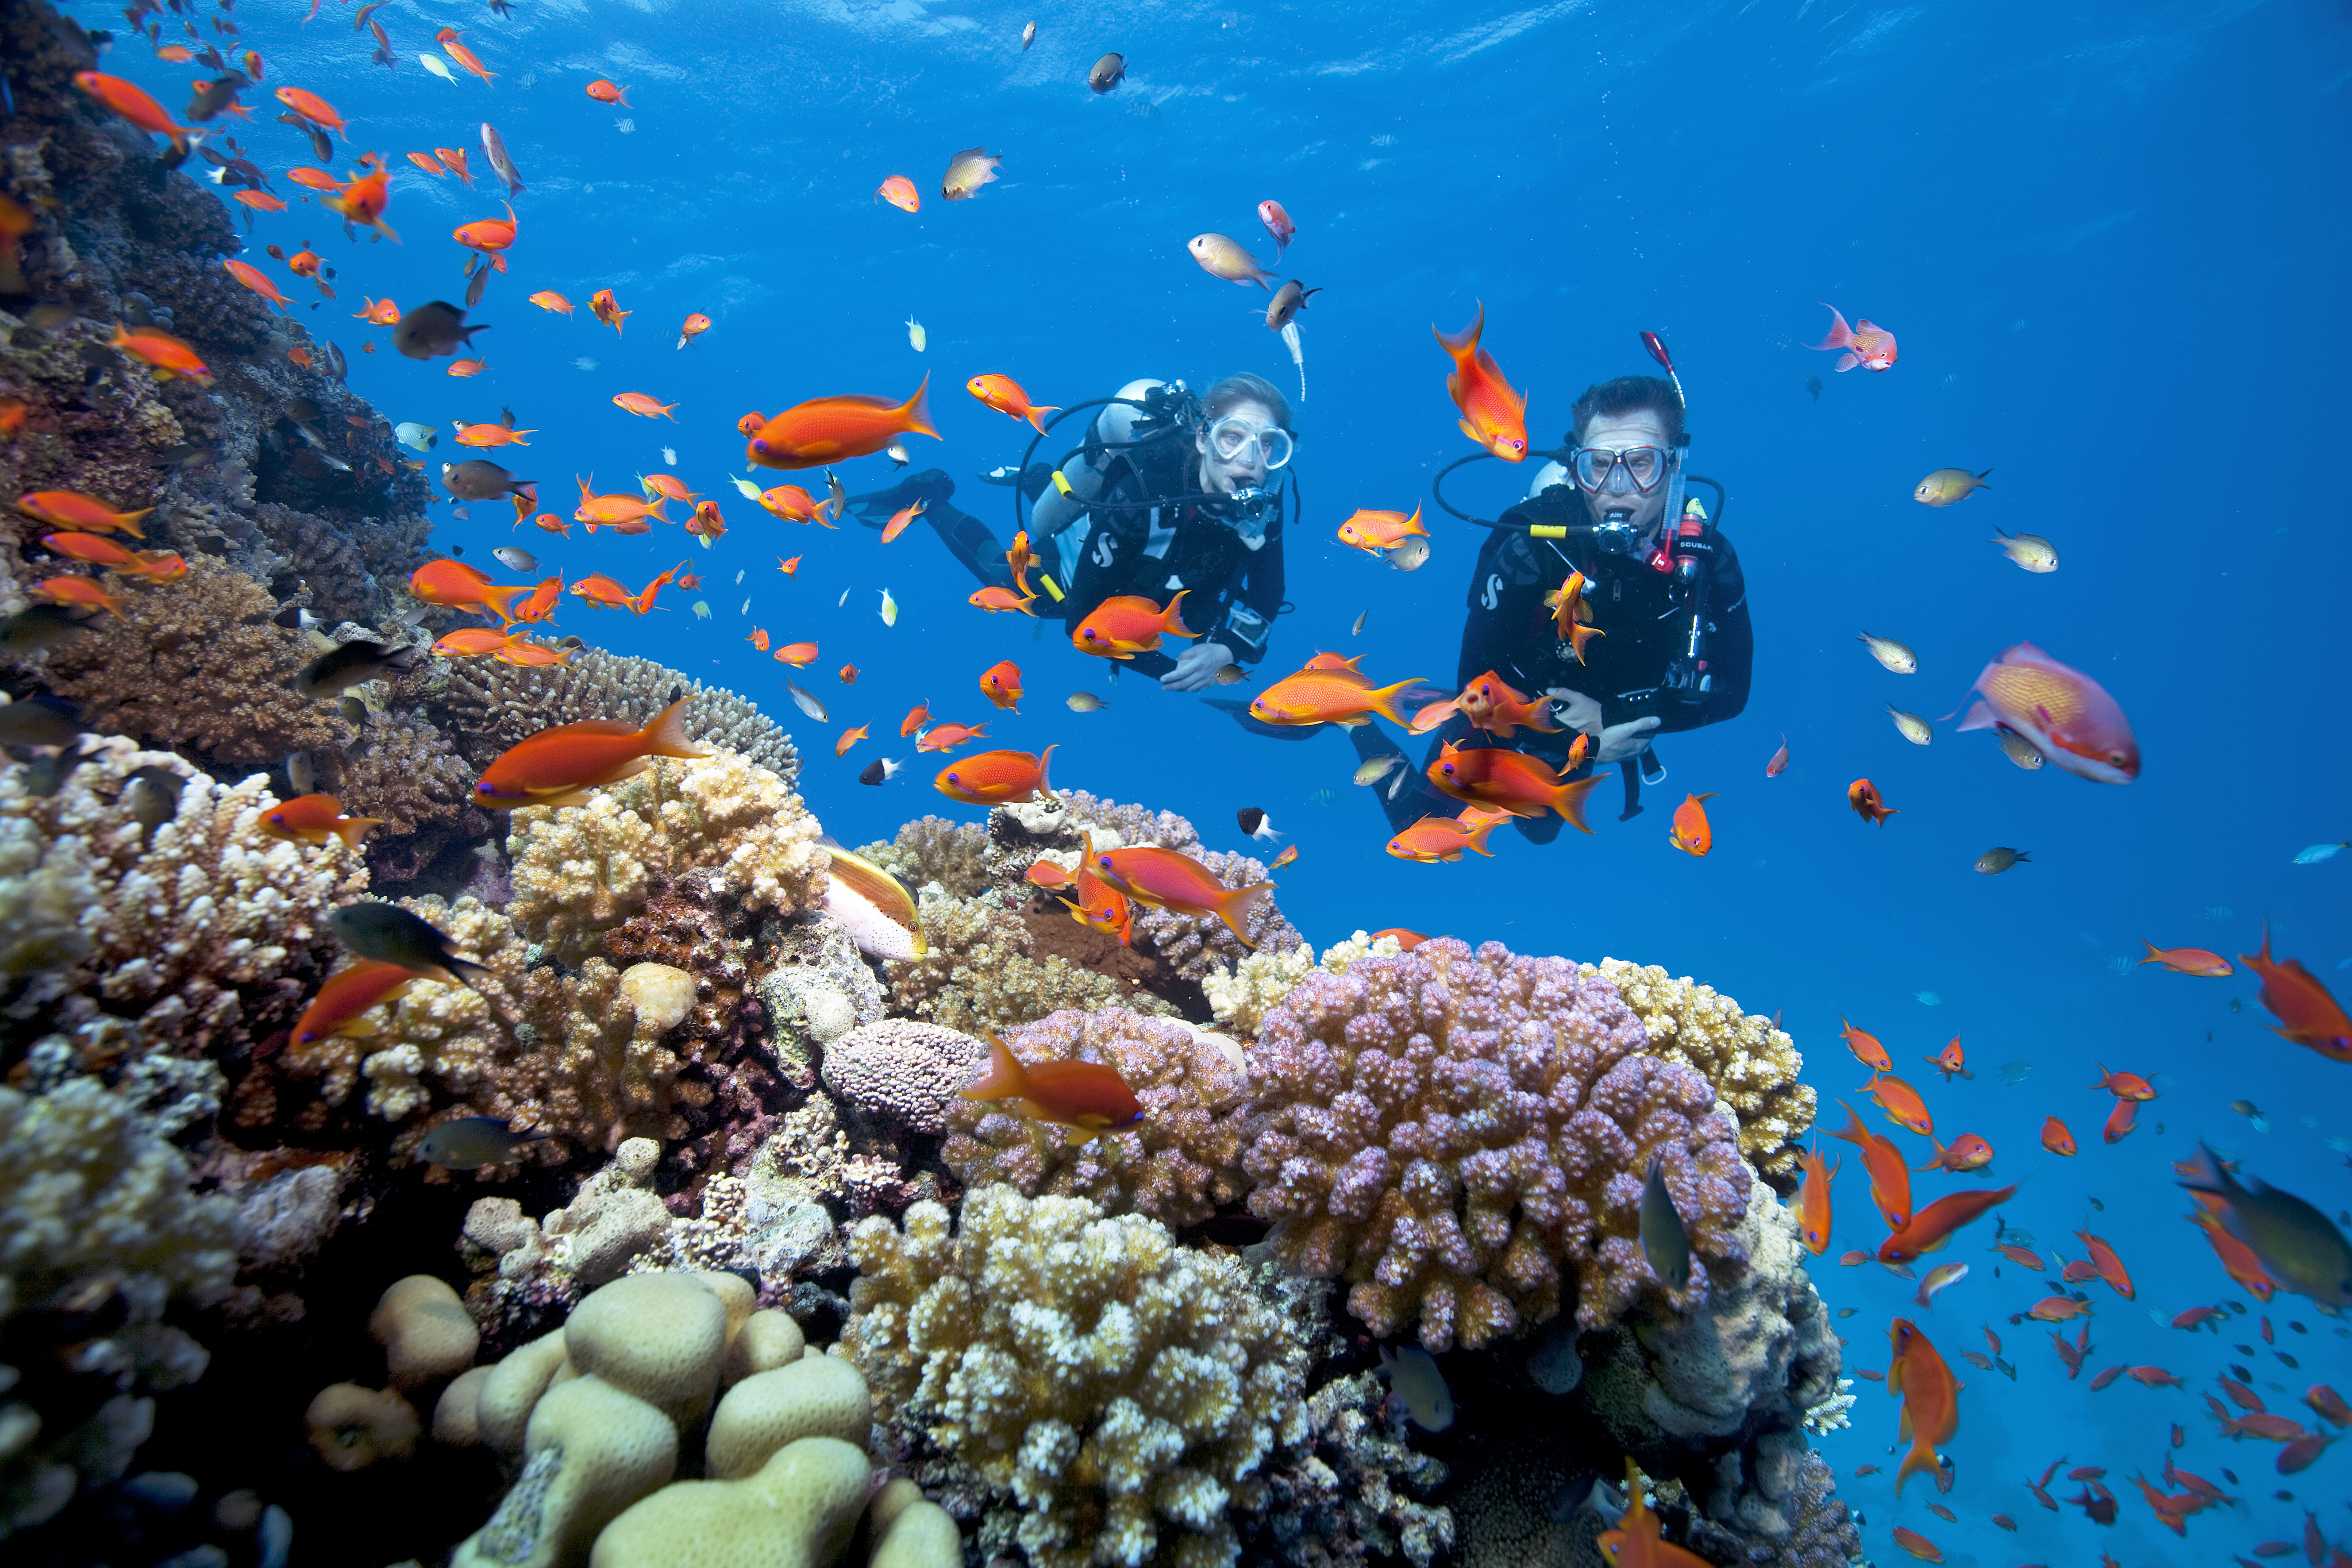 Reef with Divers